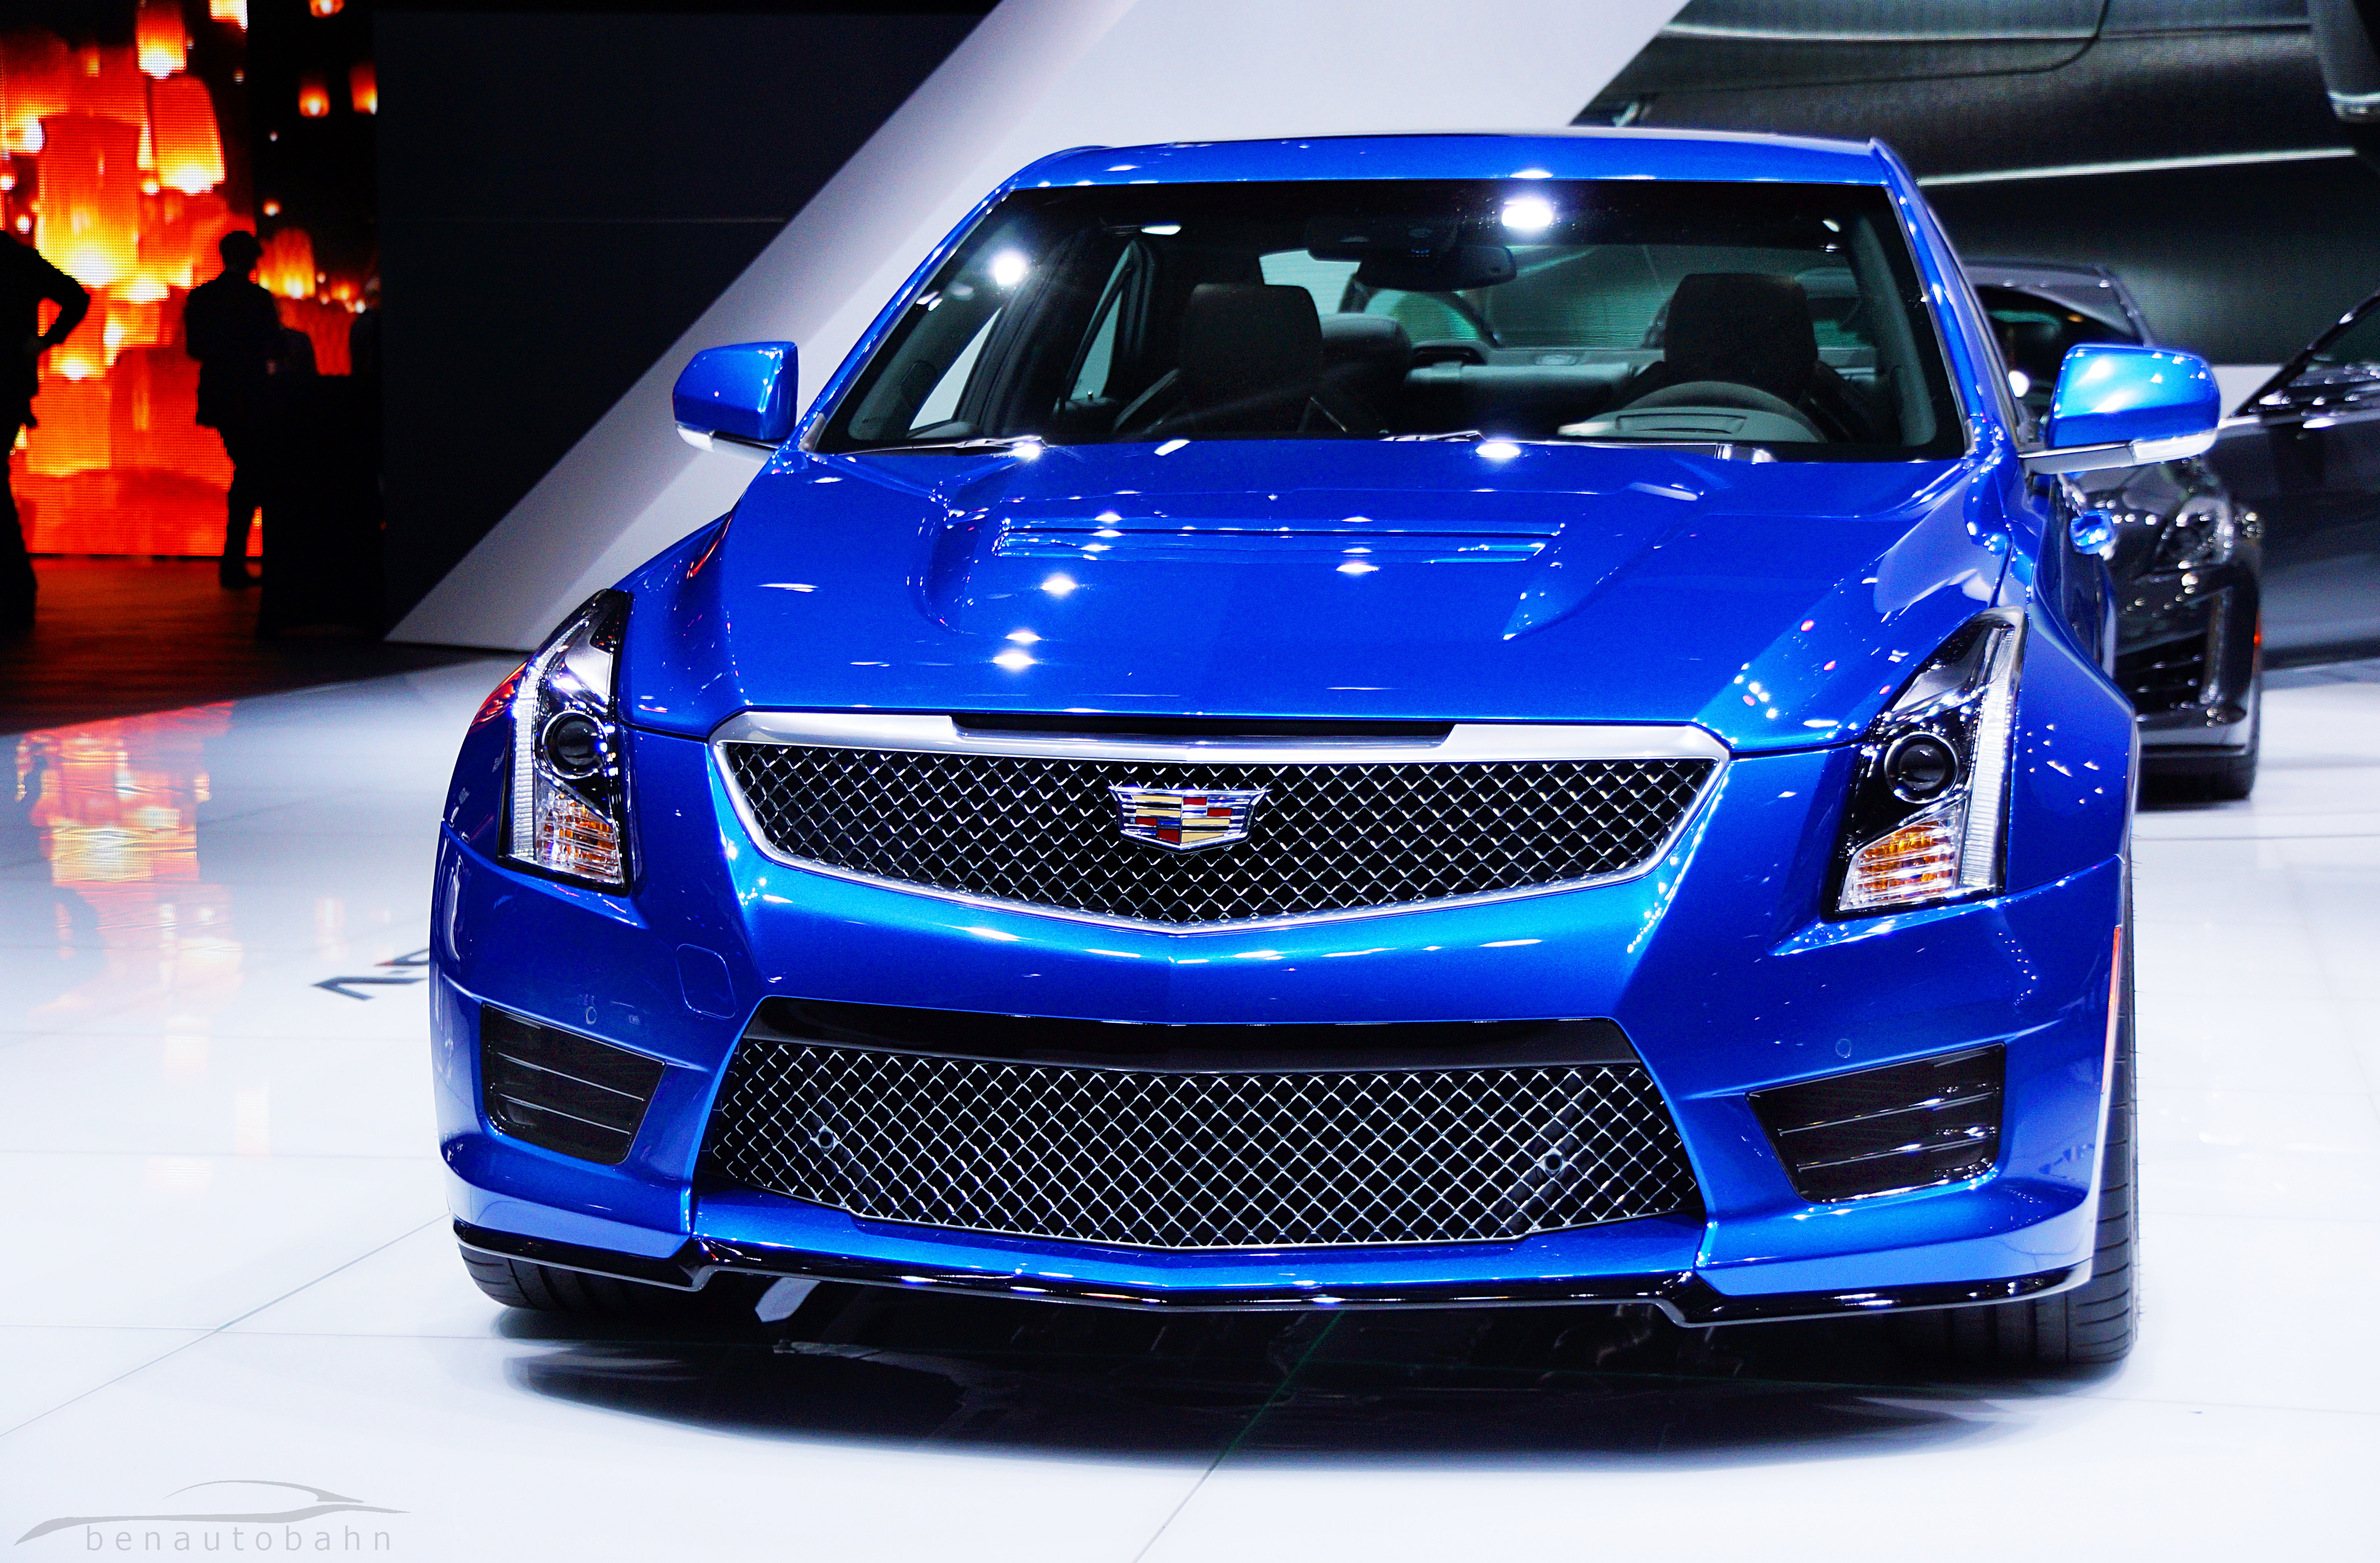 The Cadillac ATS-V is GM's answer to the BMW M3.